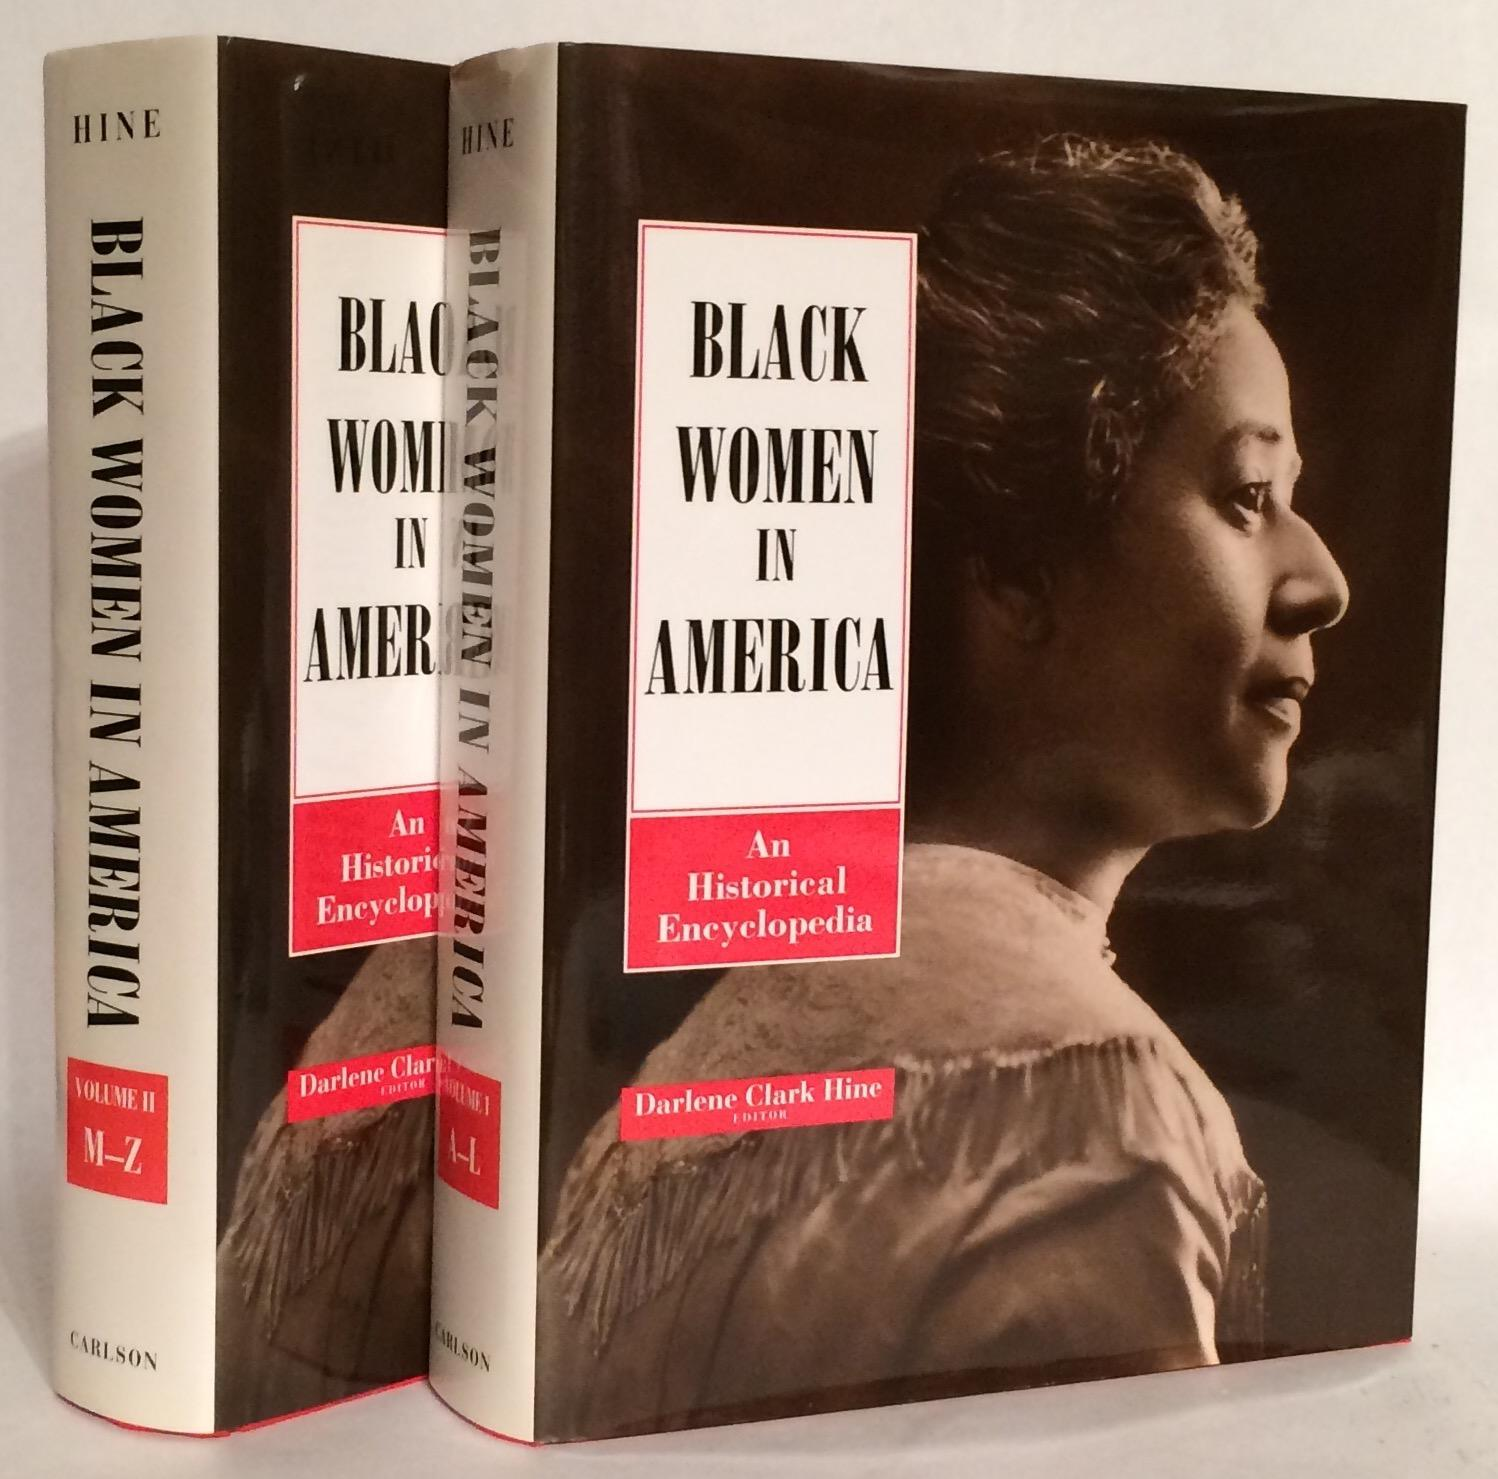 Black Women in America: An Historical Encyclopedia. Two Volumes. - Hine, Darlene Clarke, ed.